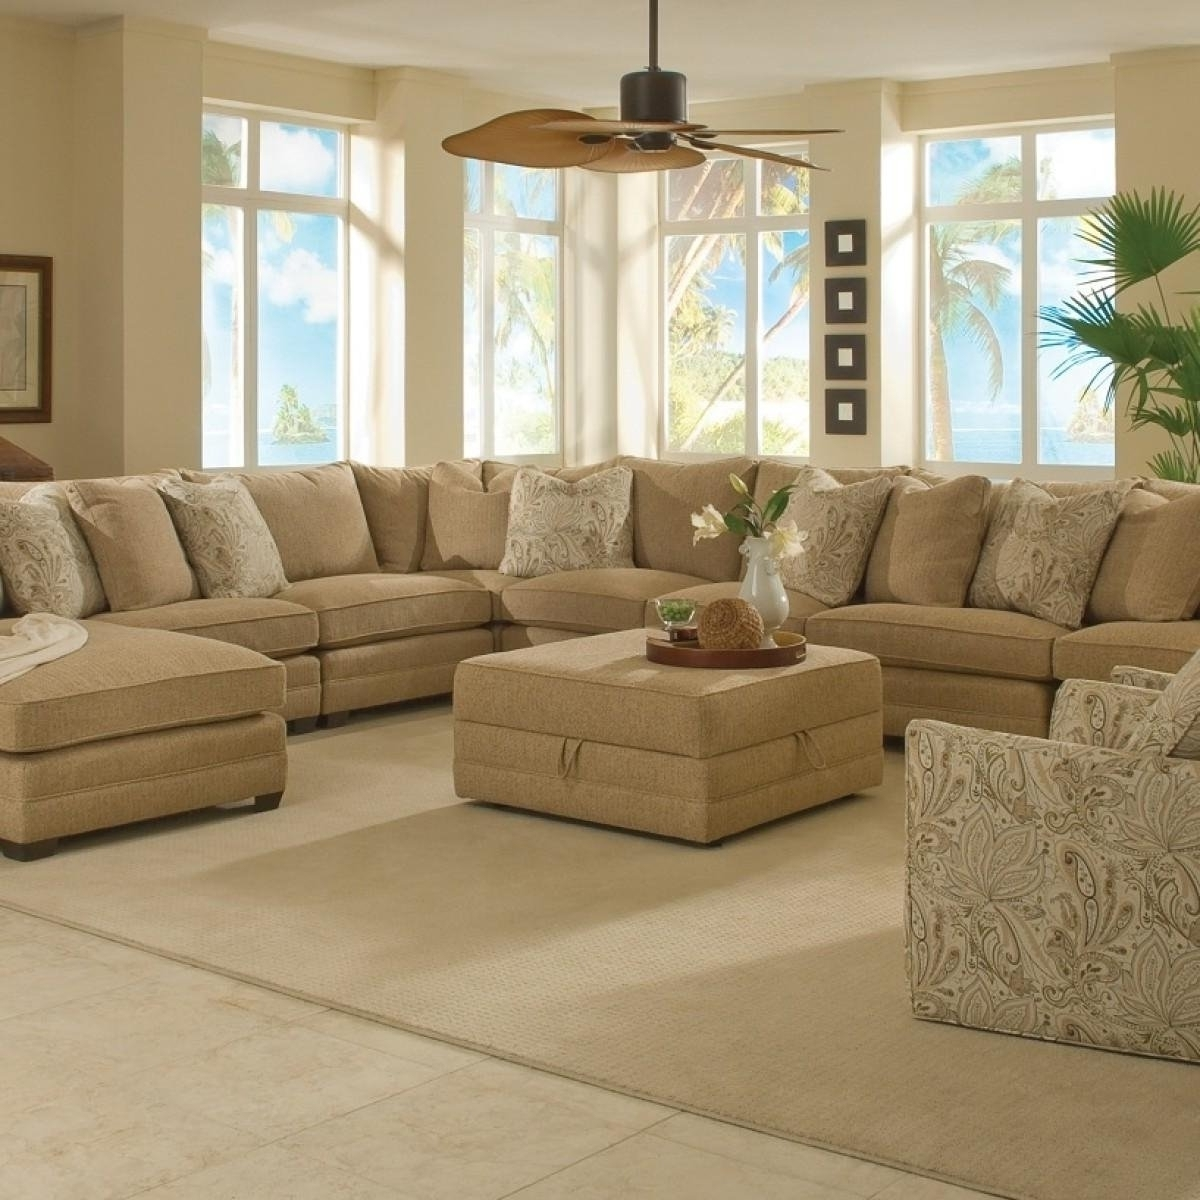 2017 Furniture: Enchanting Large Room In Tan Color And Sectional Sofa Intended For Deep Seating Sectional Sofas (View 12 of 15)